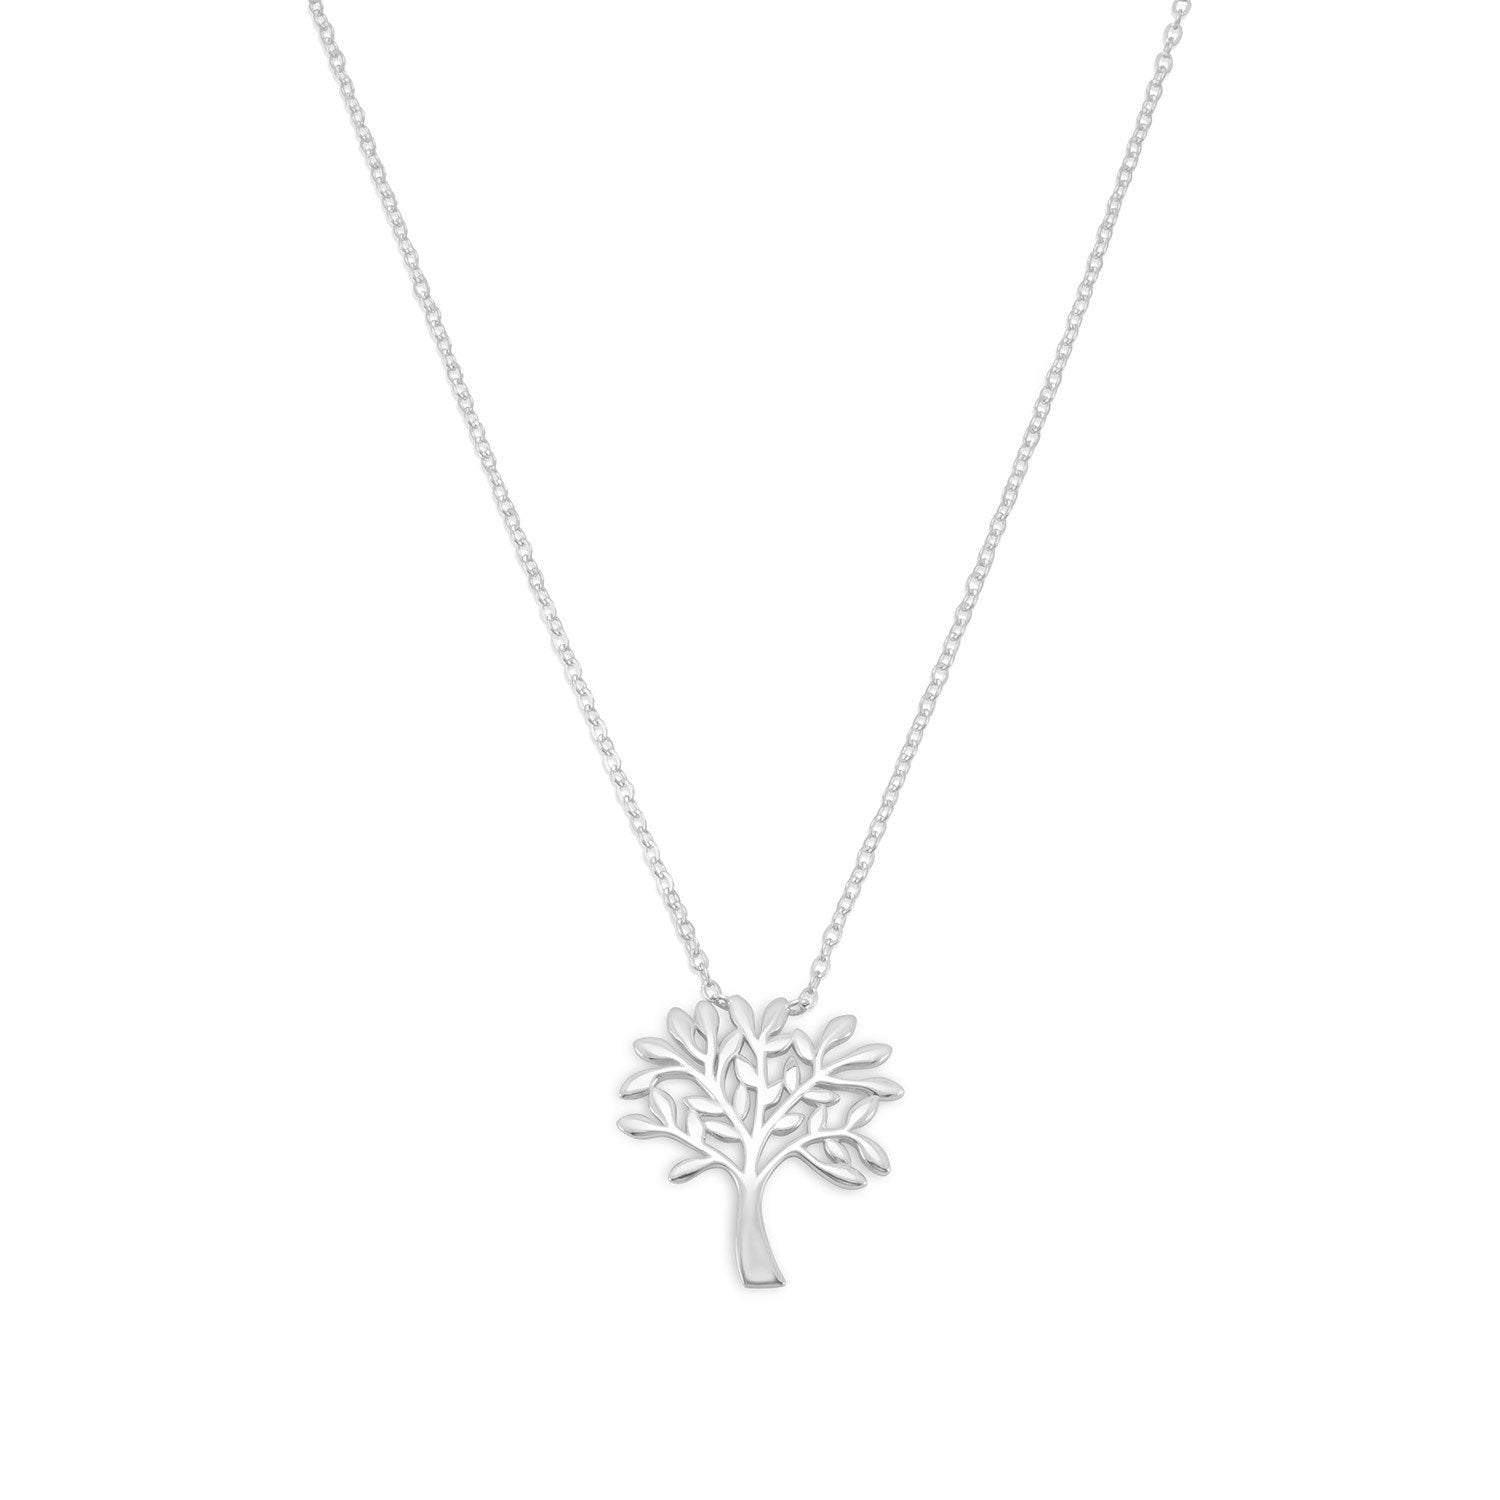 Rhodium Plated Tree Necklace - Rocky Mt. Outlet Inc - Shop & Save 24/7